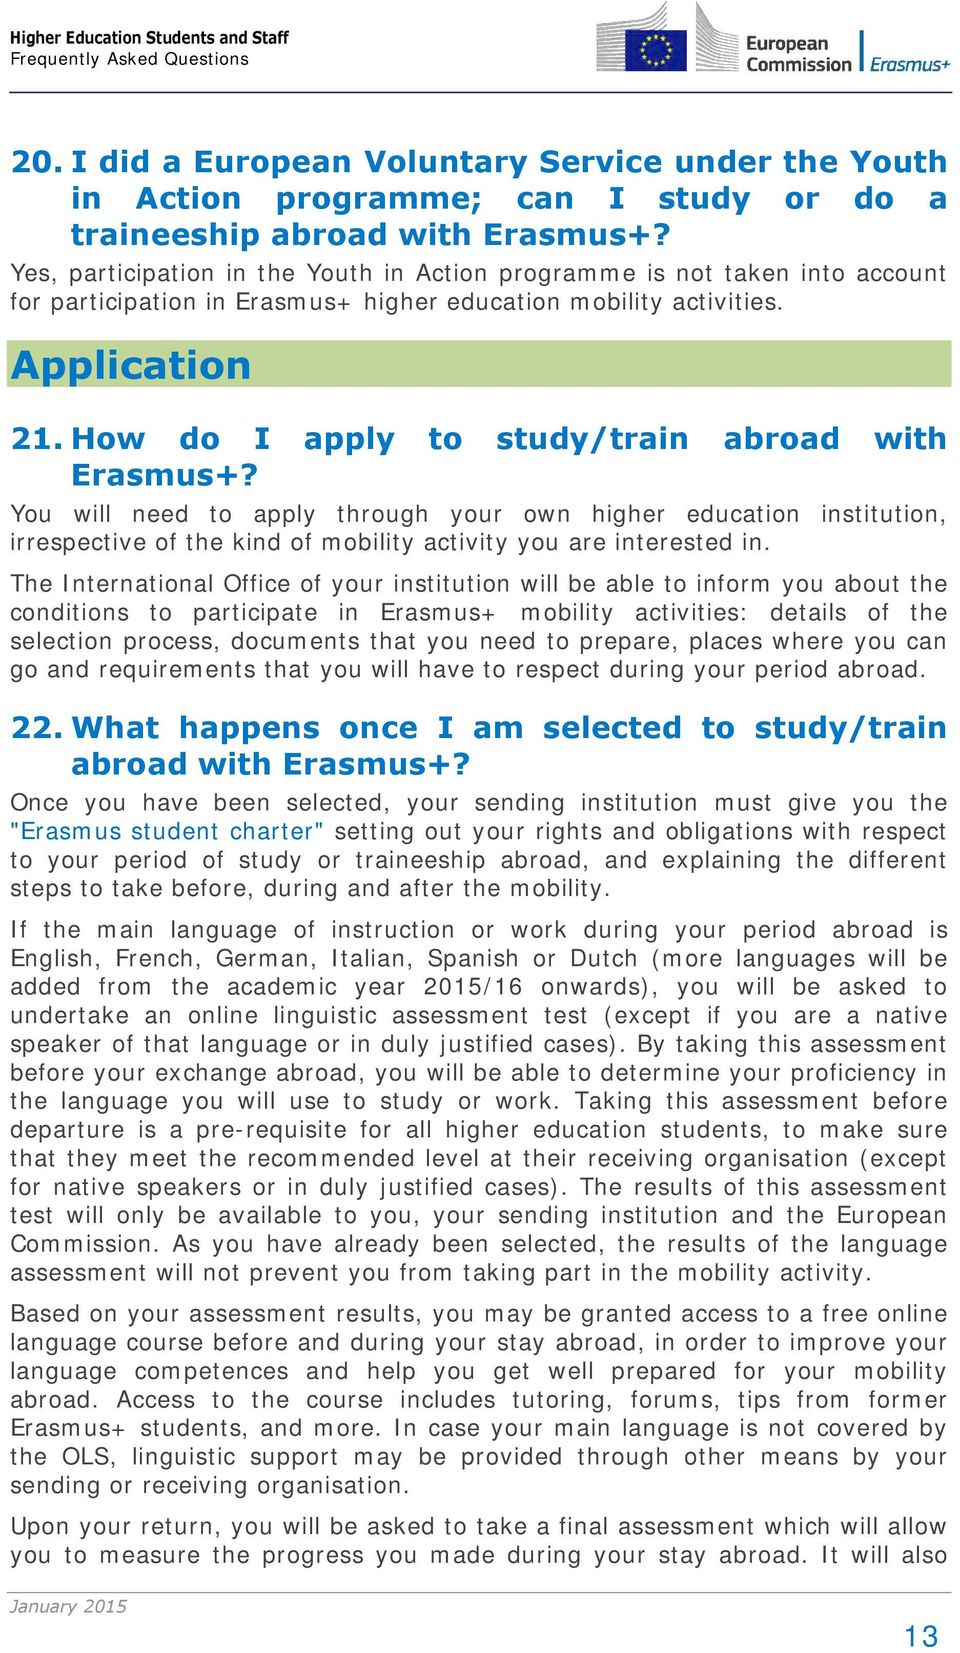 How do I apply to study/train abroad with Erasmus+? You will need to apply through your own higher education institution, irrespective of the kind of mobility activity you are interested in.